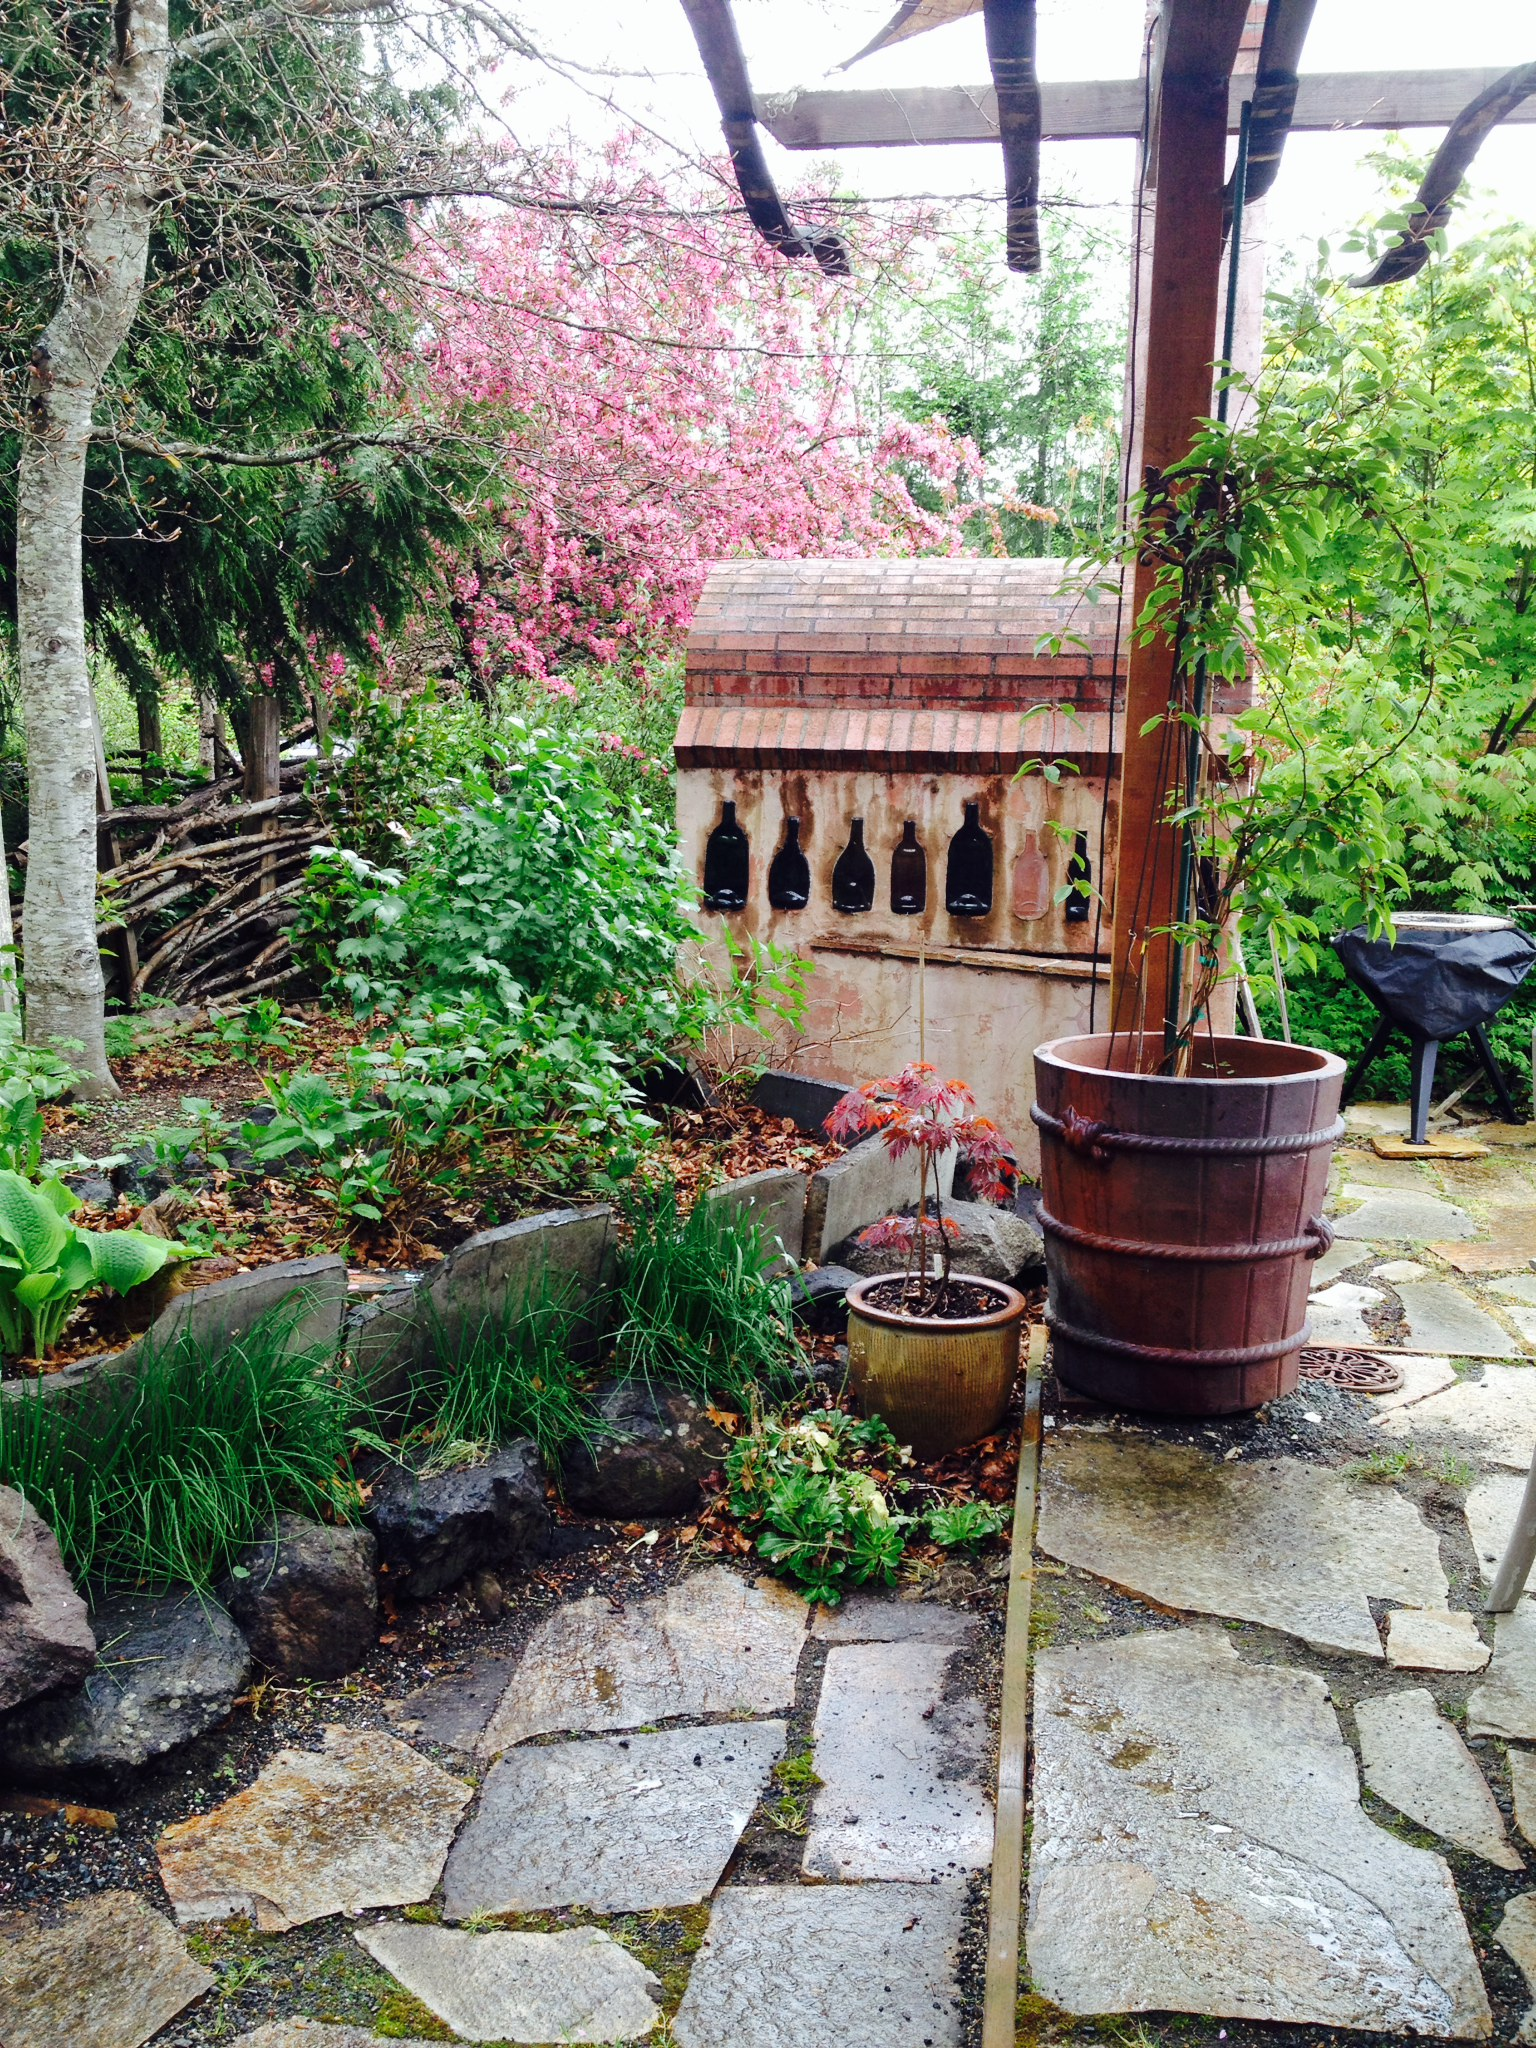 Backyard Vineyard Ideas : wine cellars yard backyard diy ideas for garden flowers greenery wine